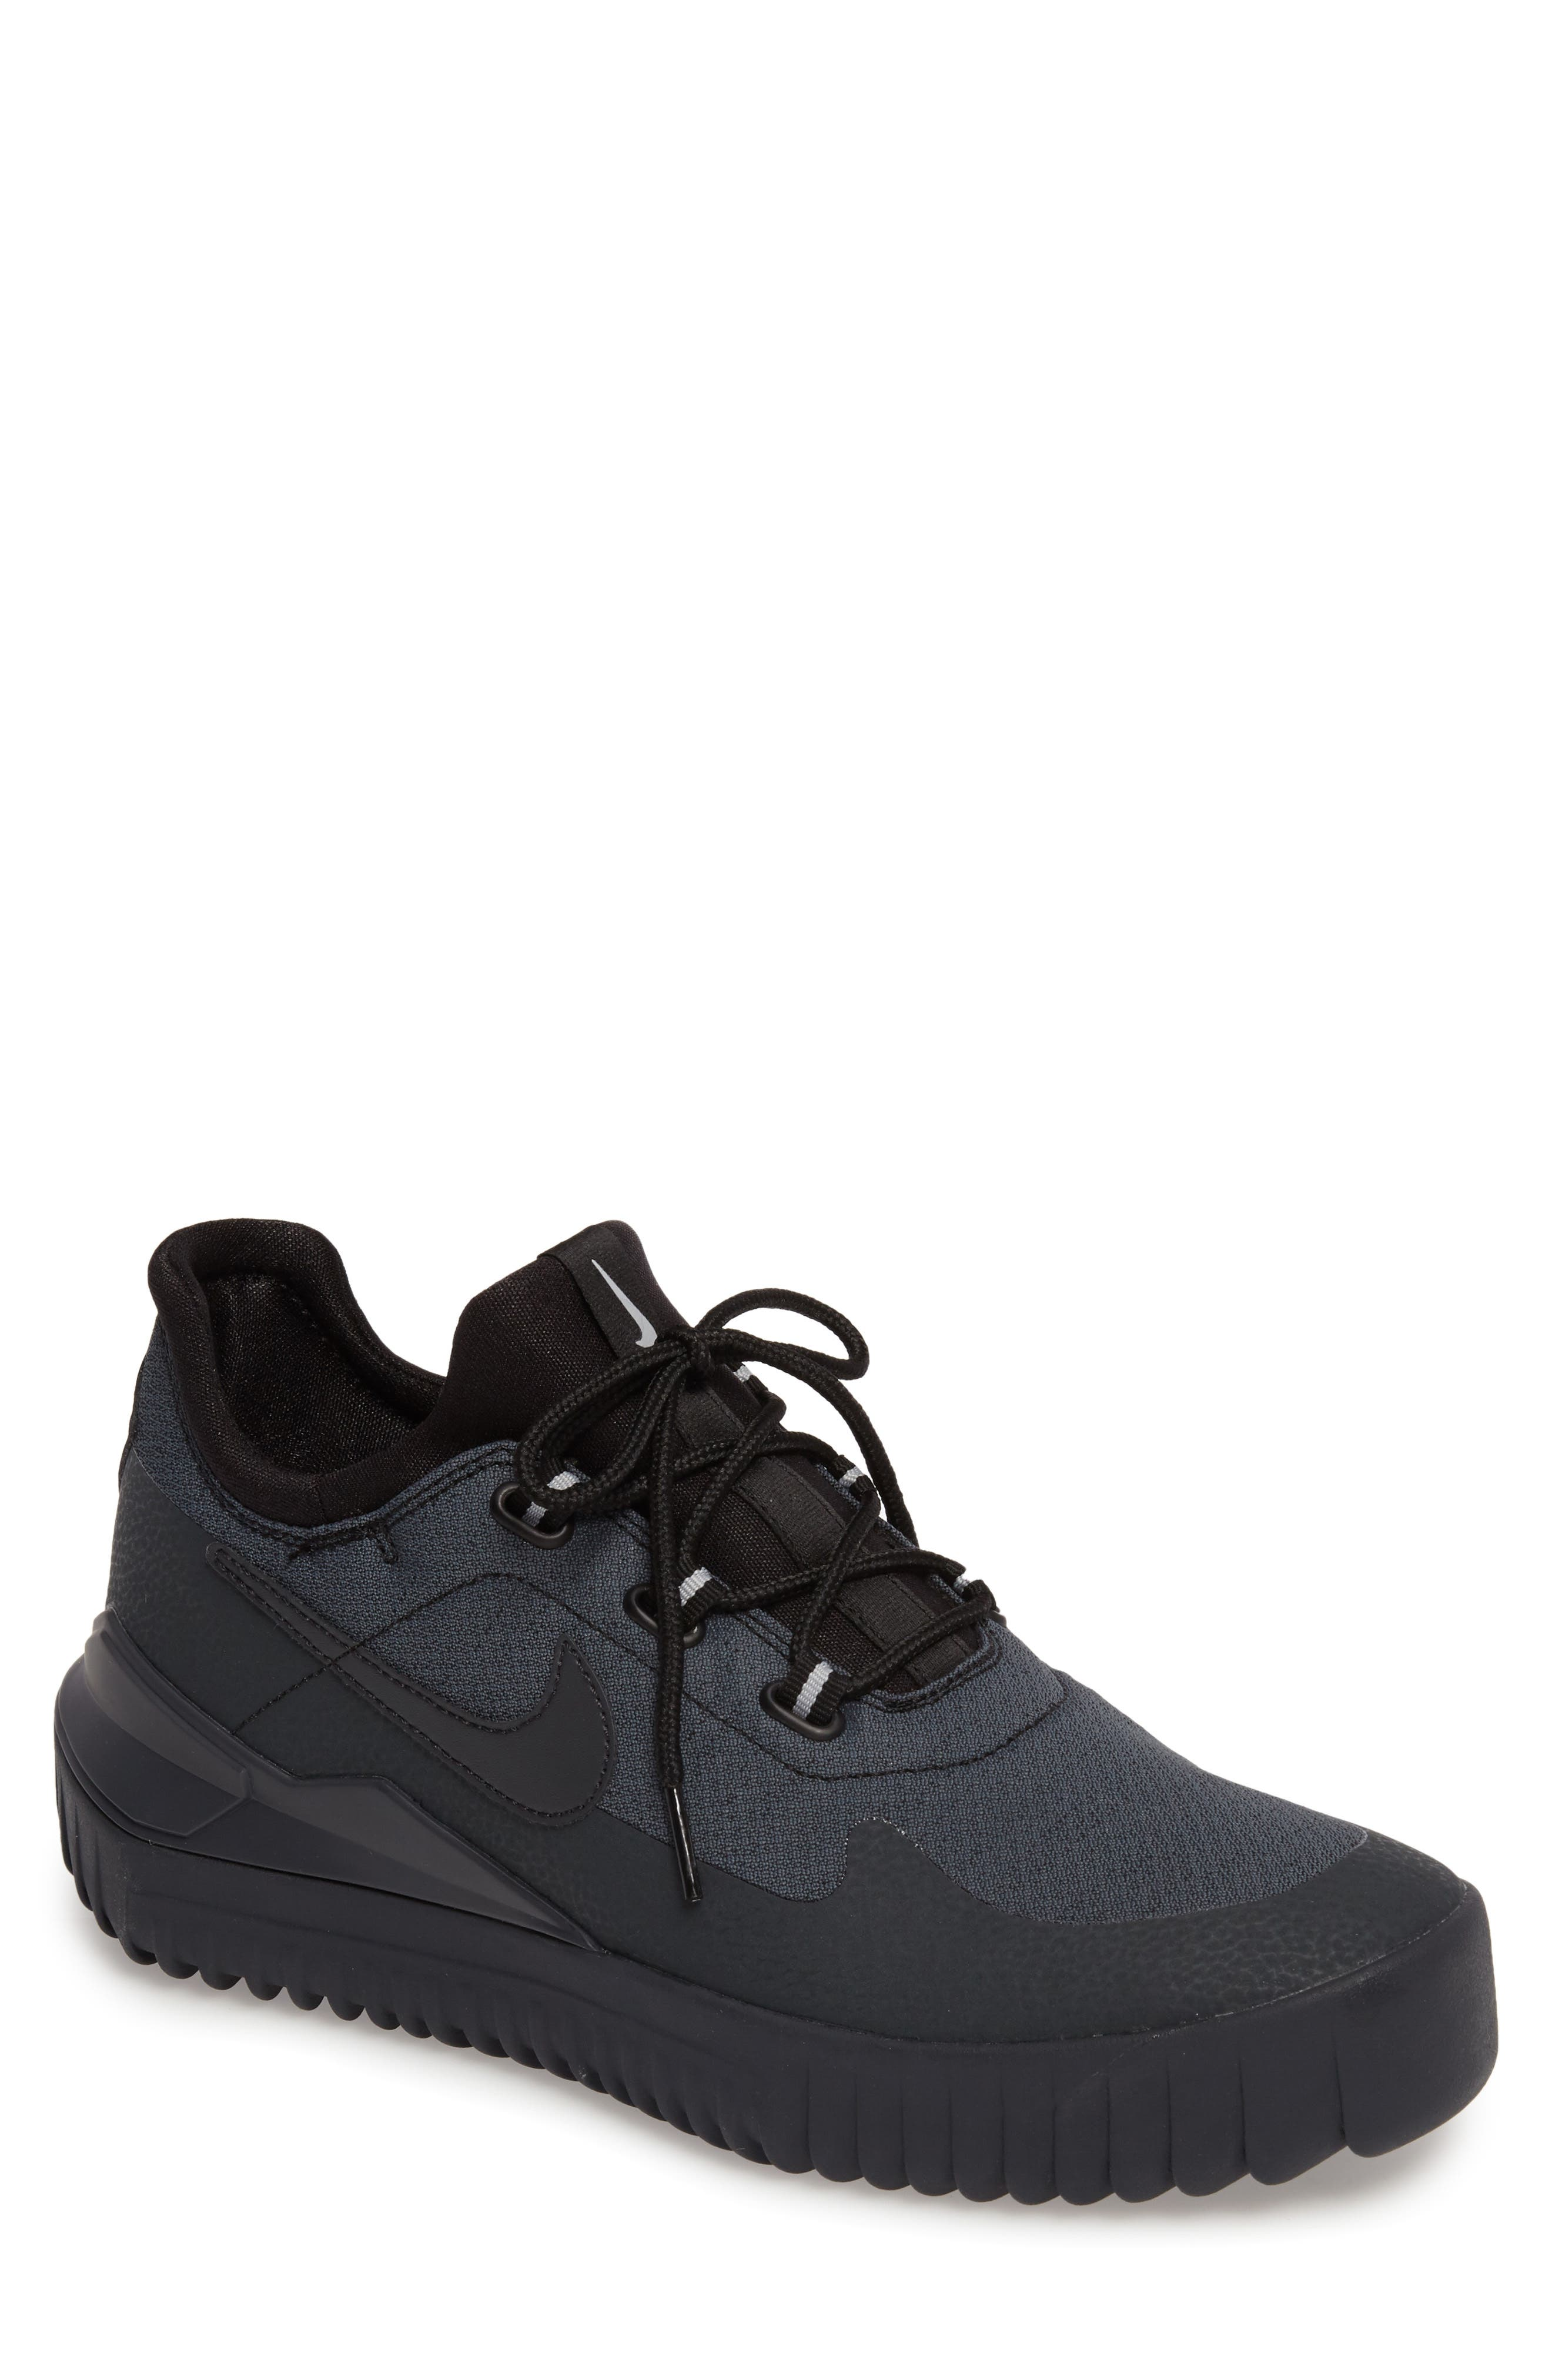 Air Wild Sneaker,                         Main,                         color, Black/ Anthracite/ Grey